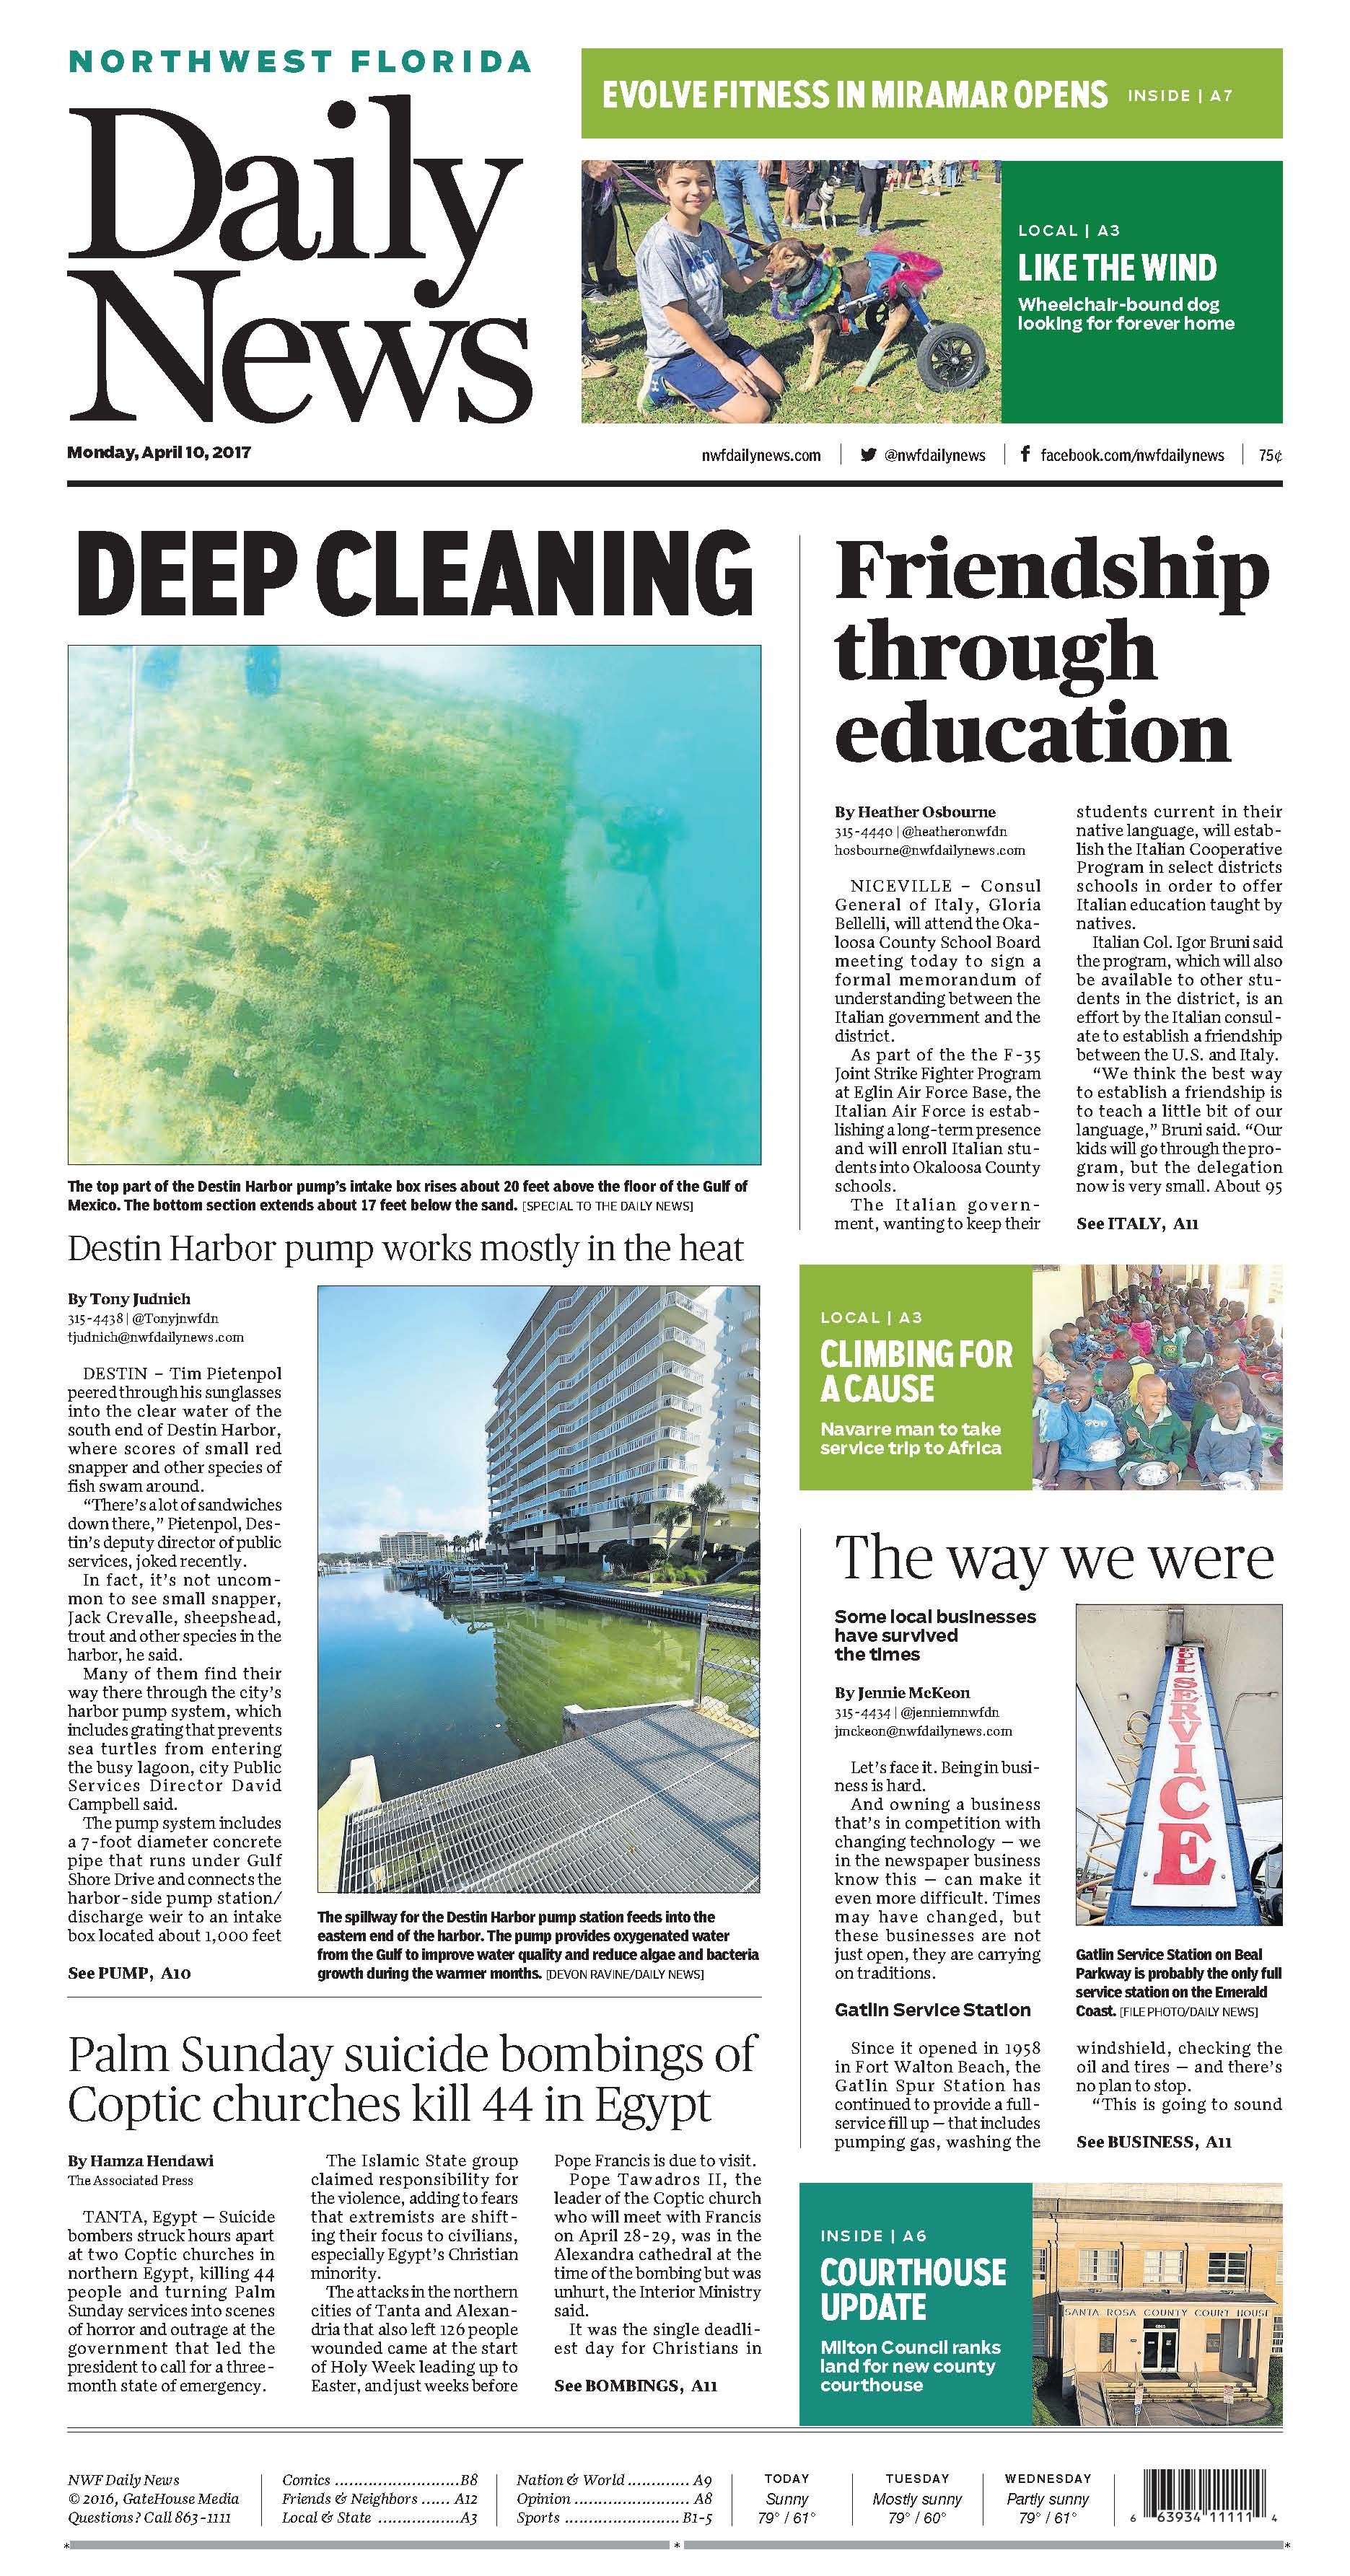 The April 10, 2017, front page of the Northwest Florida